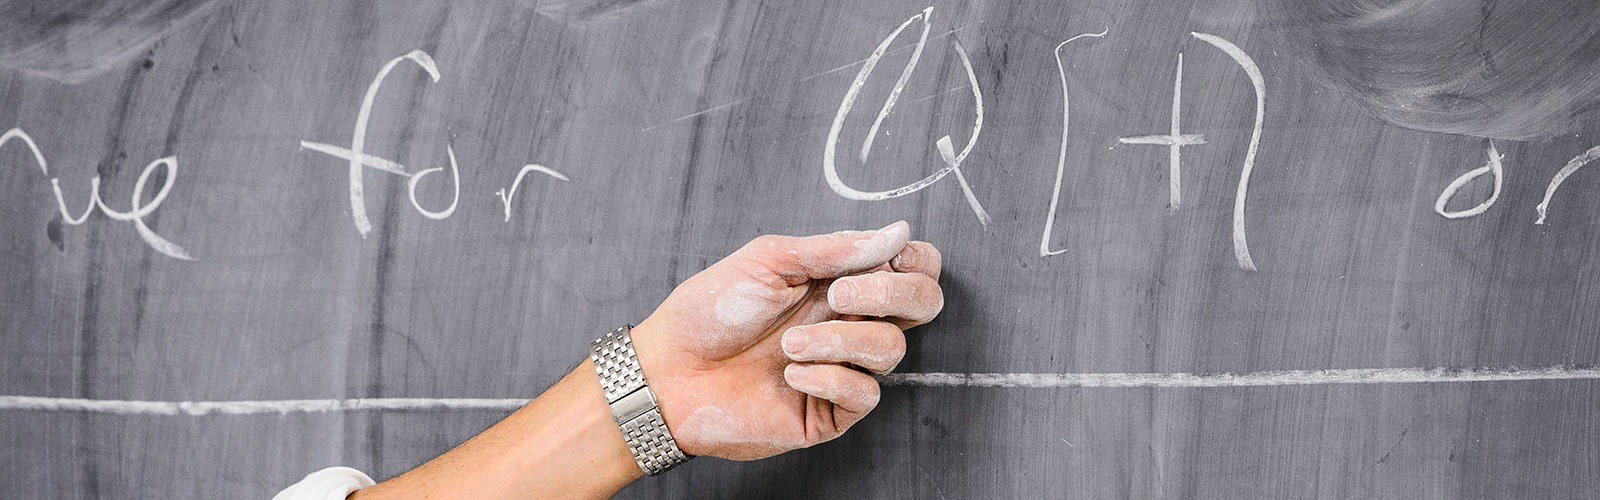 Chalky hand pointing to mathematical equation on blackboard